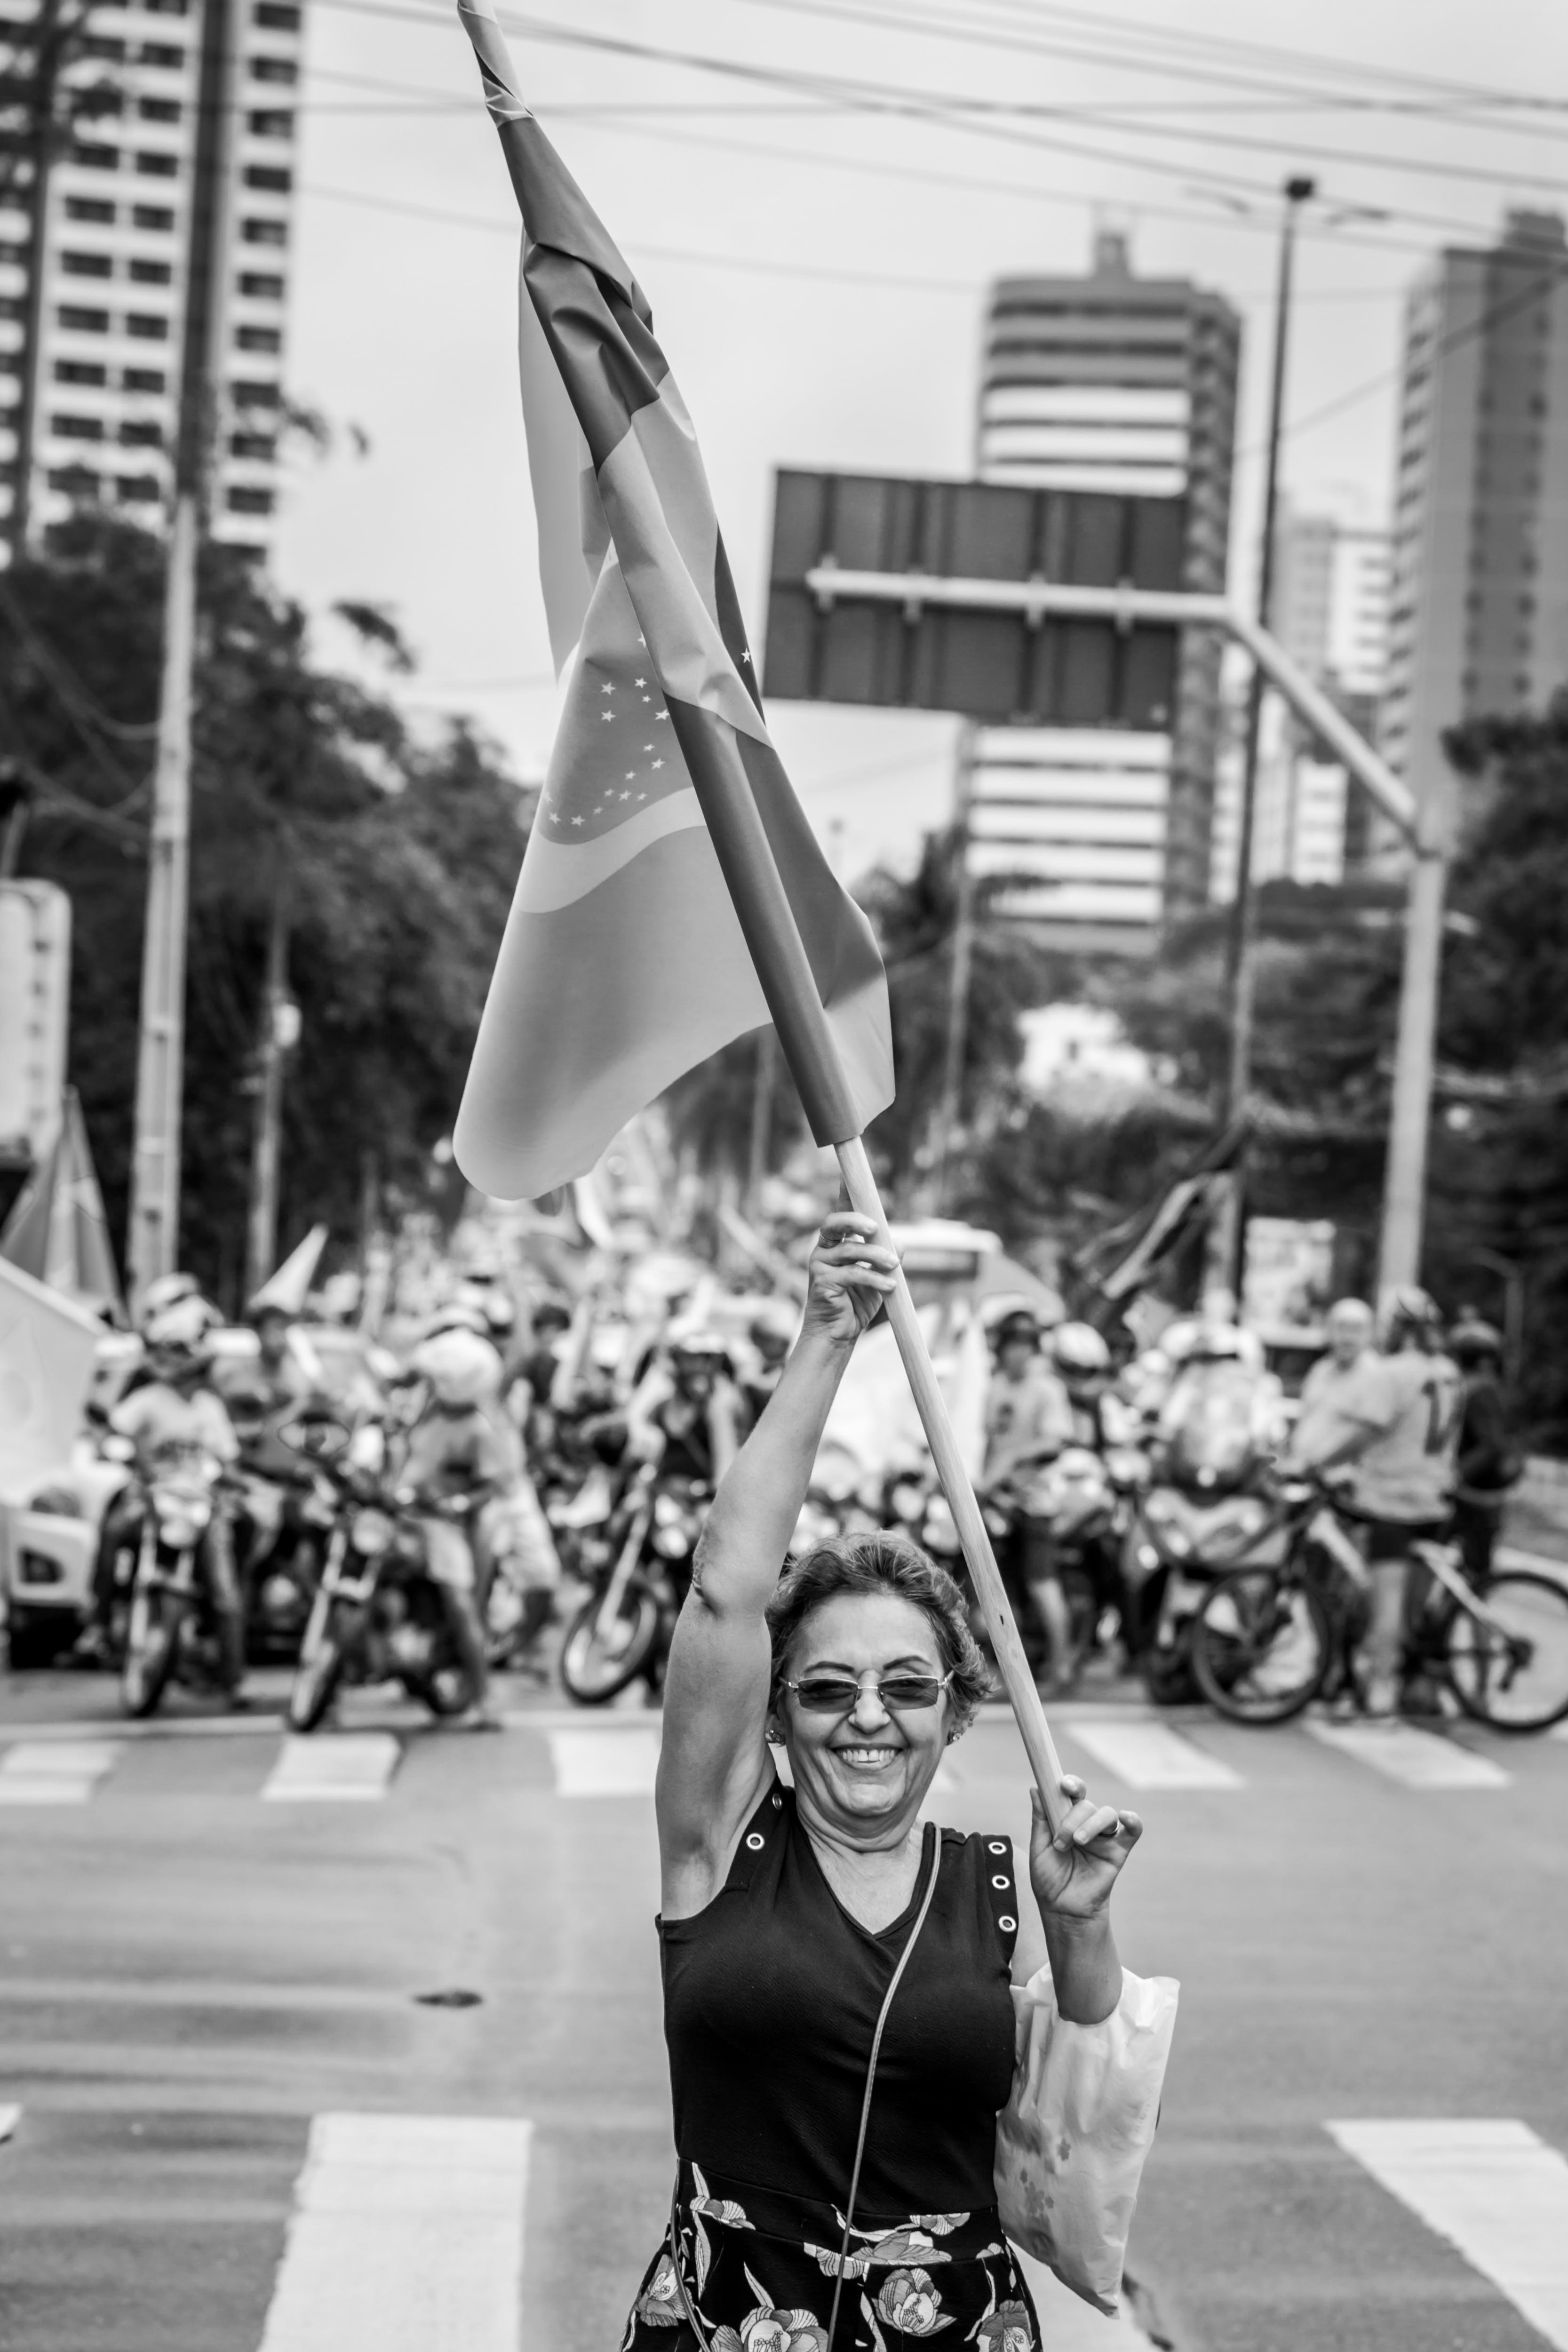 Grayscale Photo of Woman Holding Flag